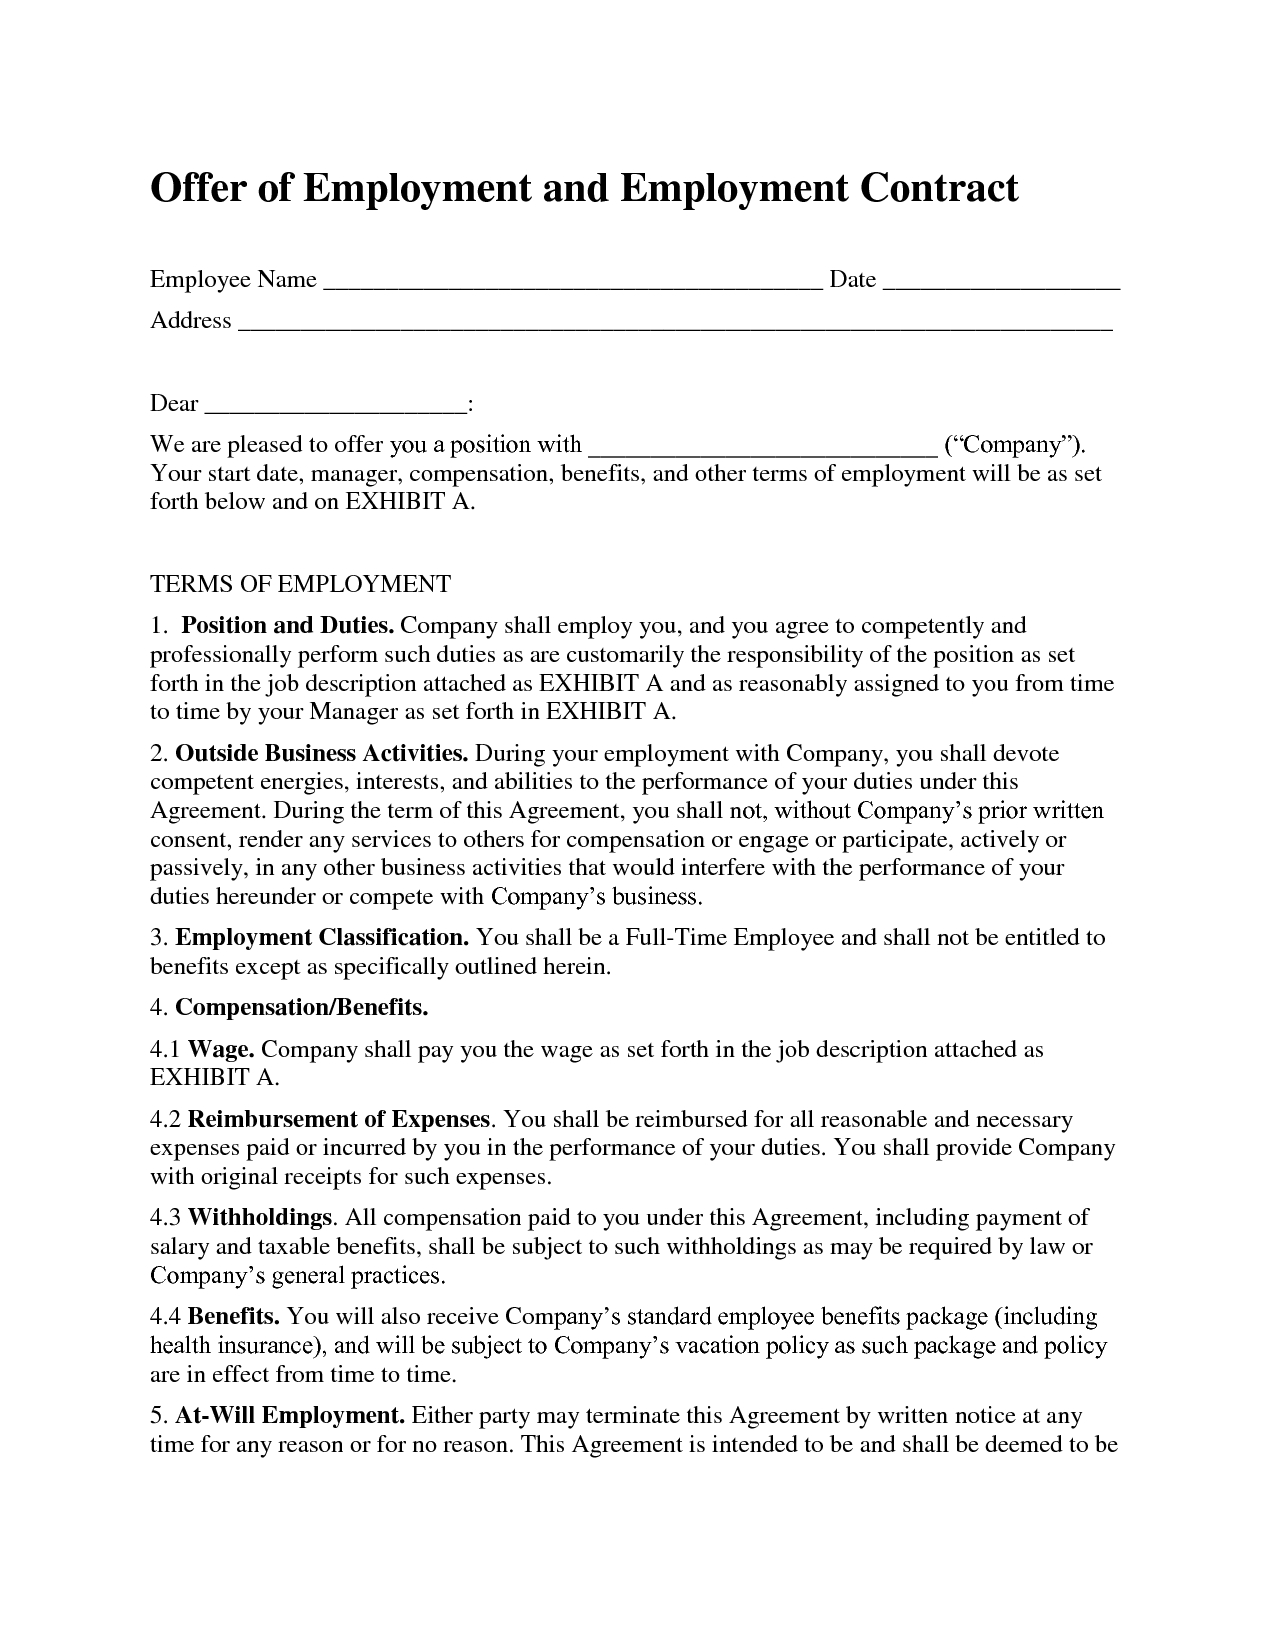 Printable Sample Employment Contract Sample Form | Attorney Legal - Free Printable Employment Contracts